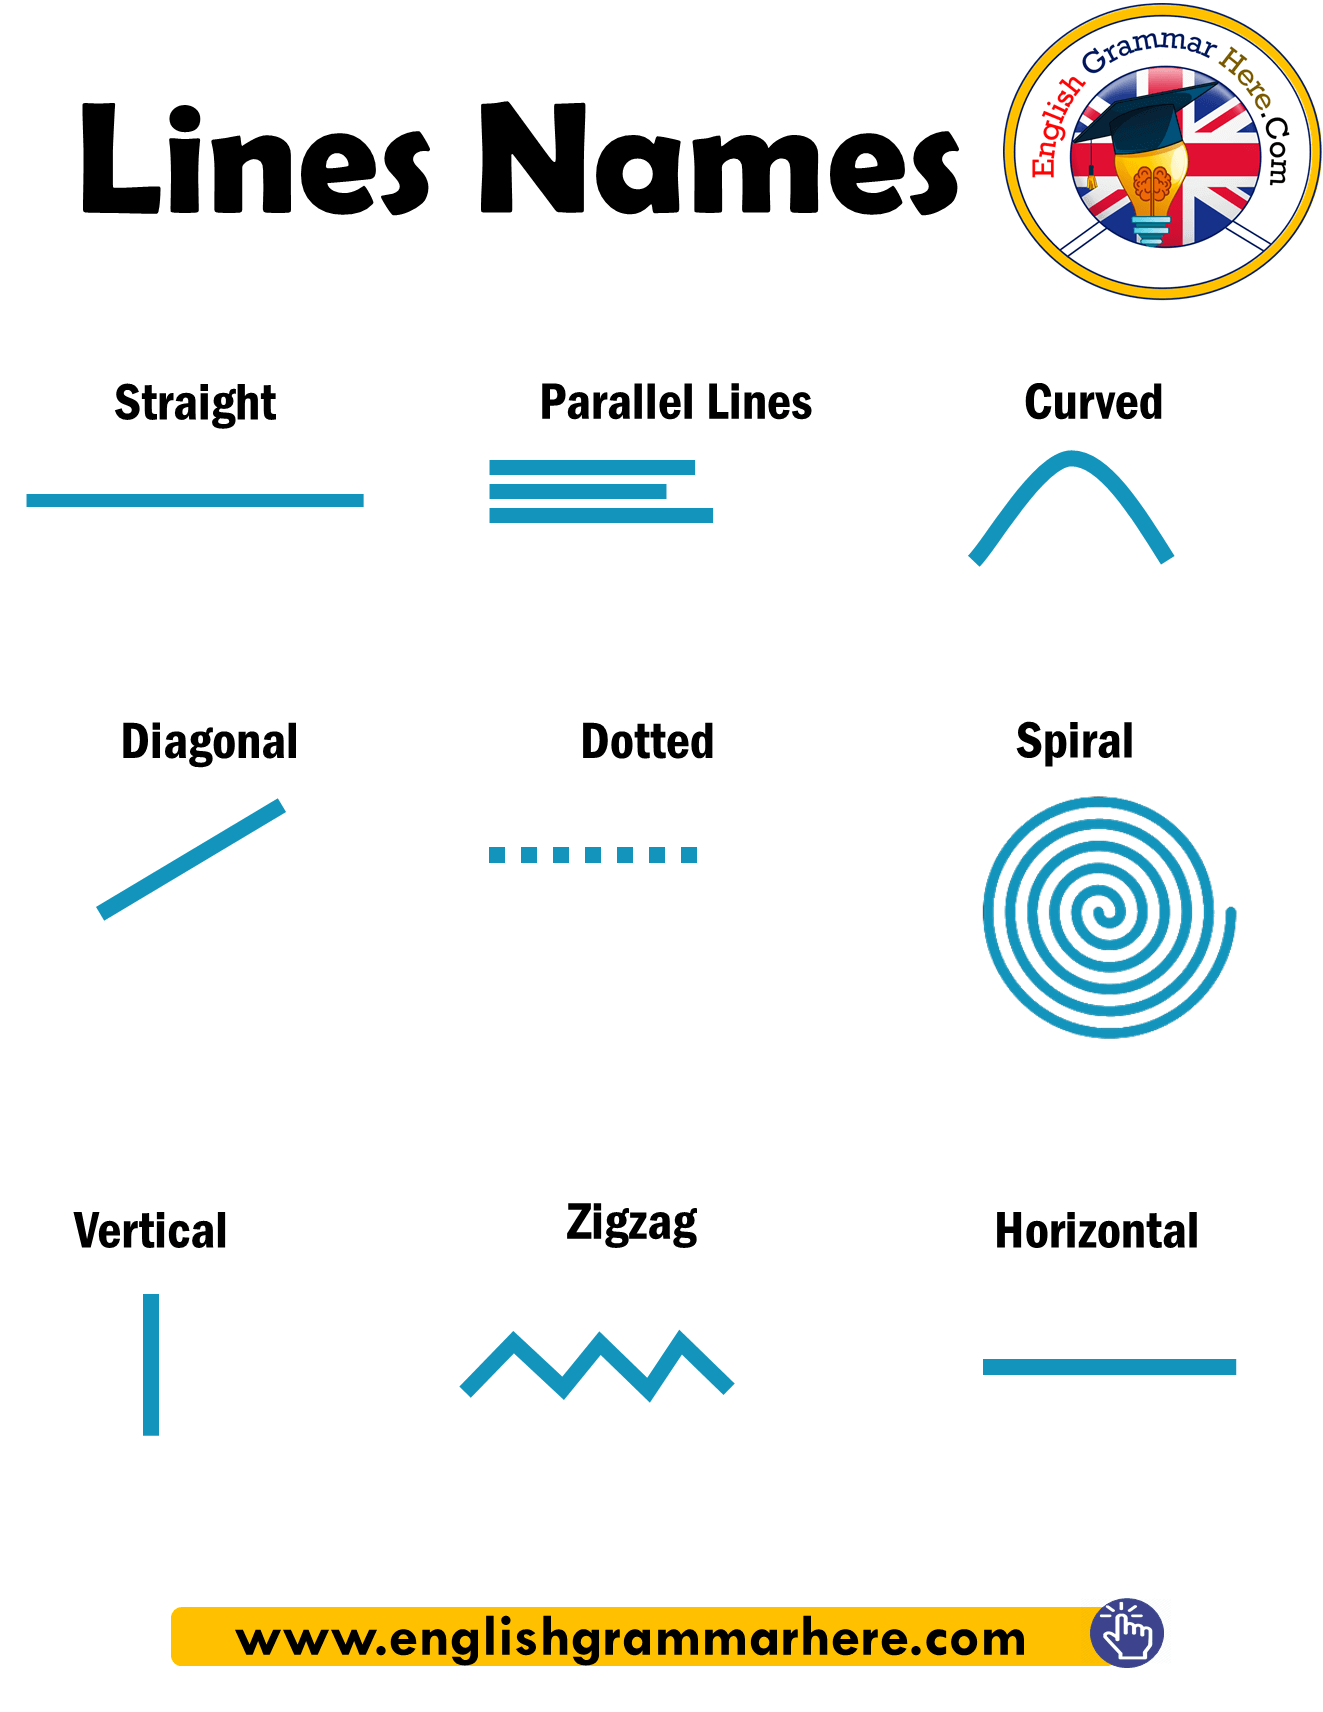 Lines Names in English